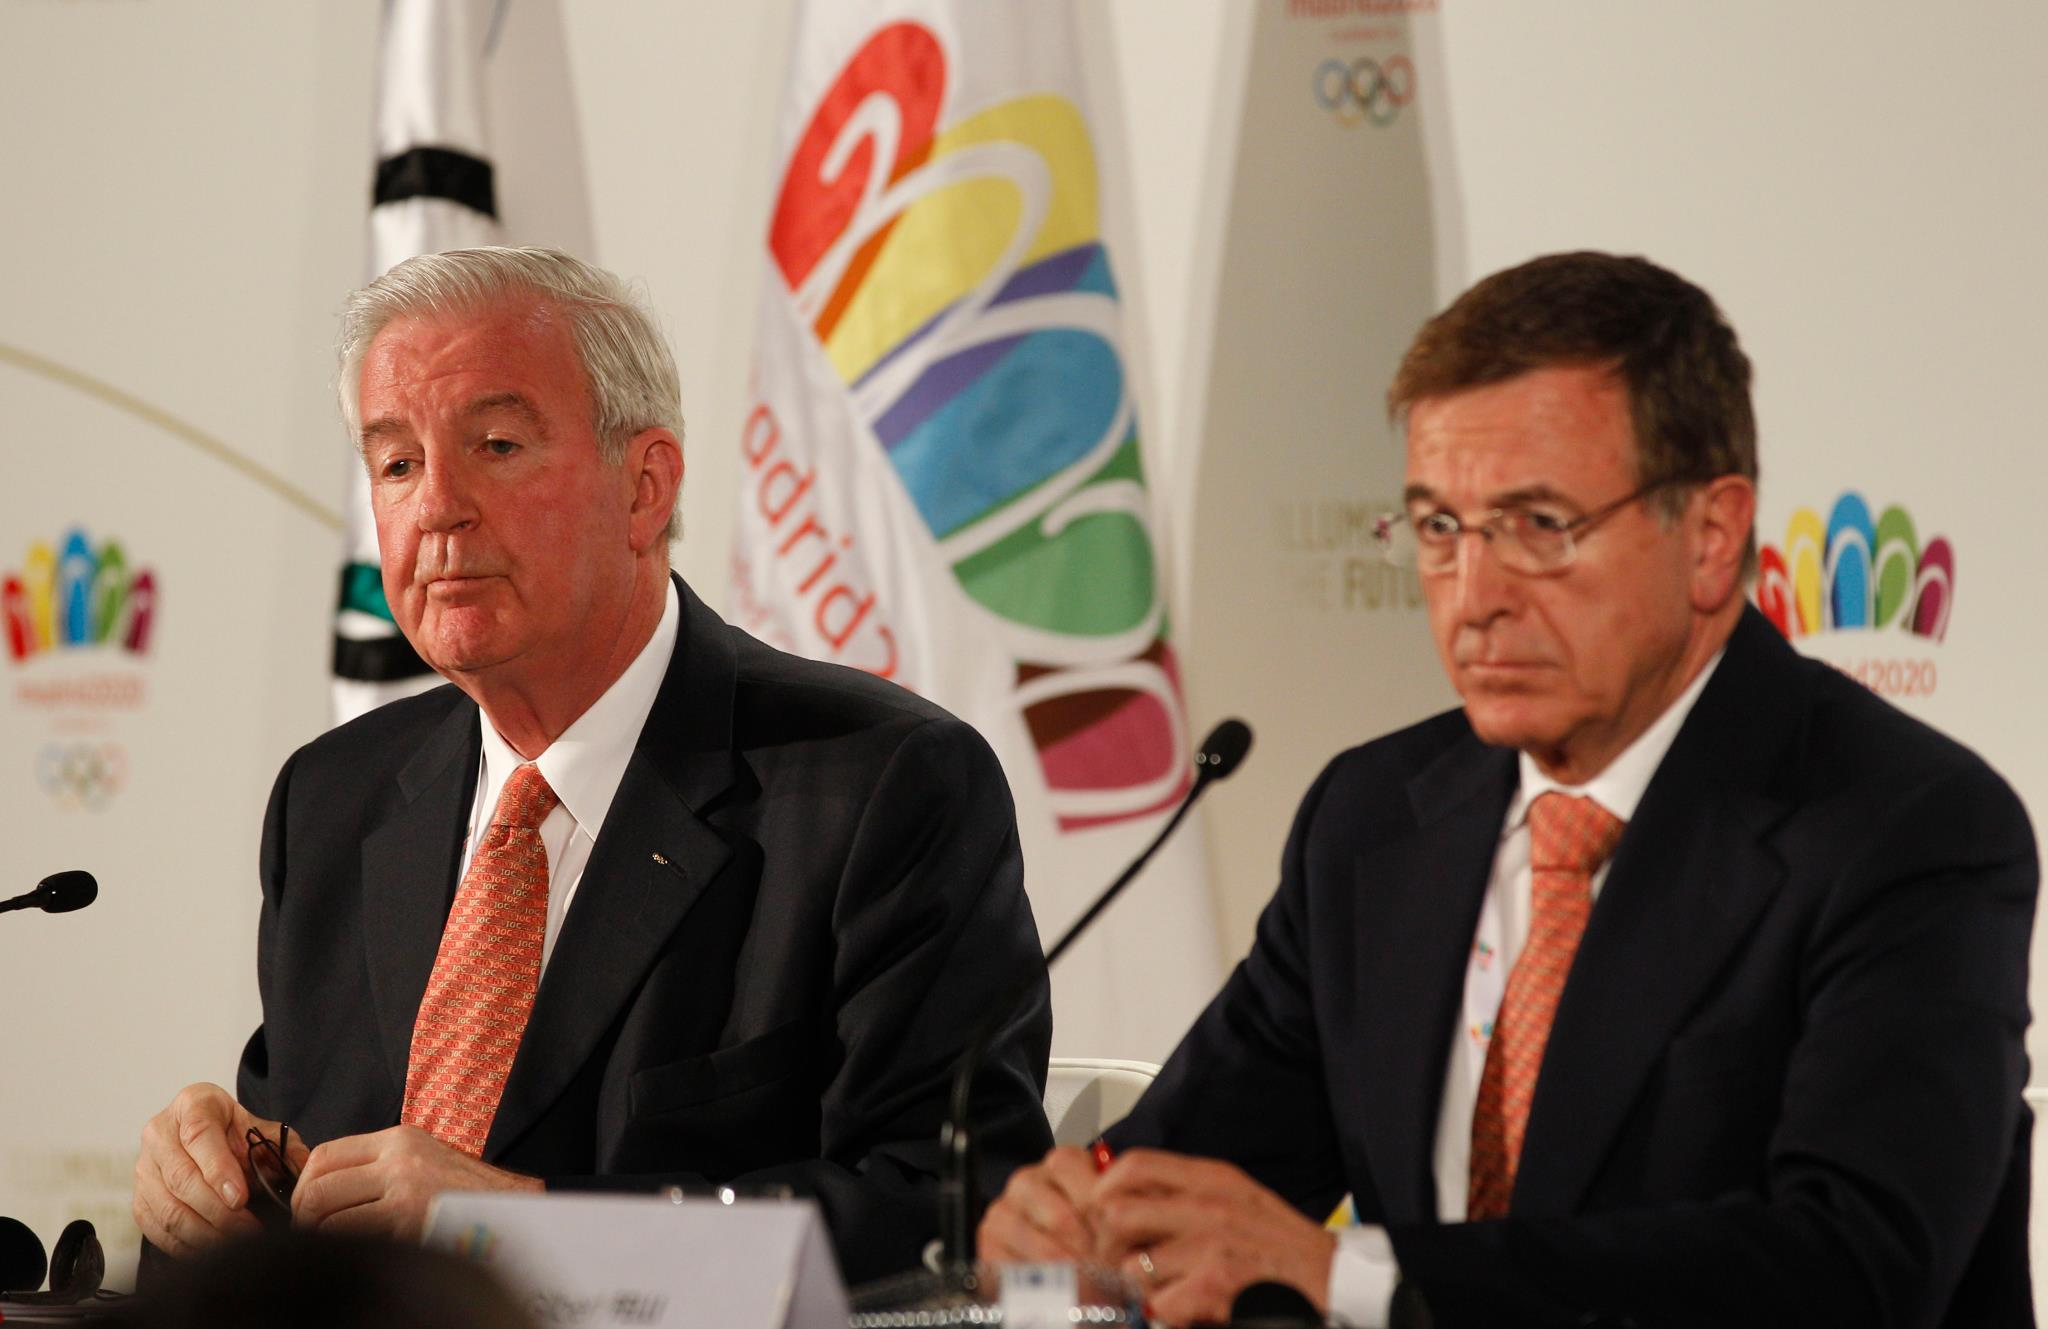 Sir Craig Reedie, left, chairman of the IOC evaluation commission, and Gilbert Felli, the IOC's Games executive director, at the closing news conference // photo courtesy Madrid 2020